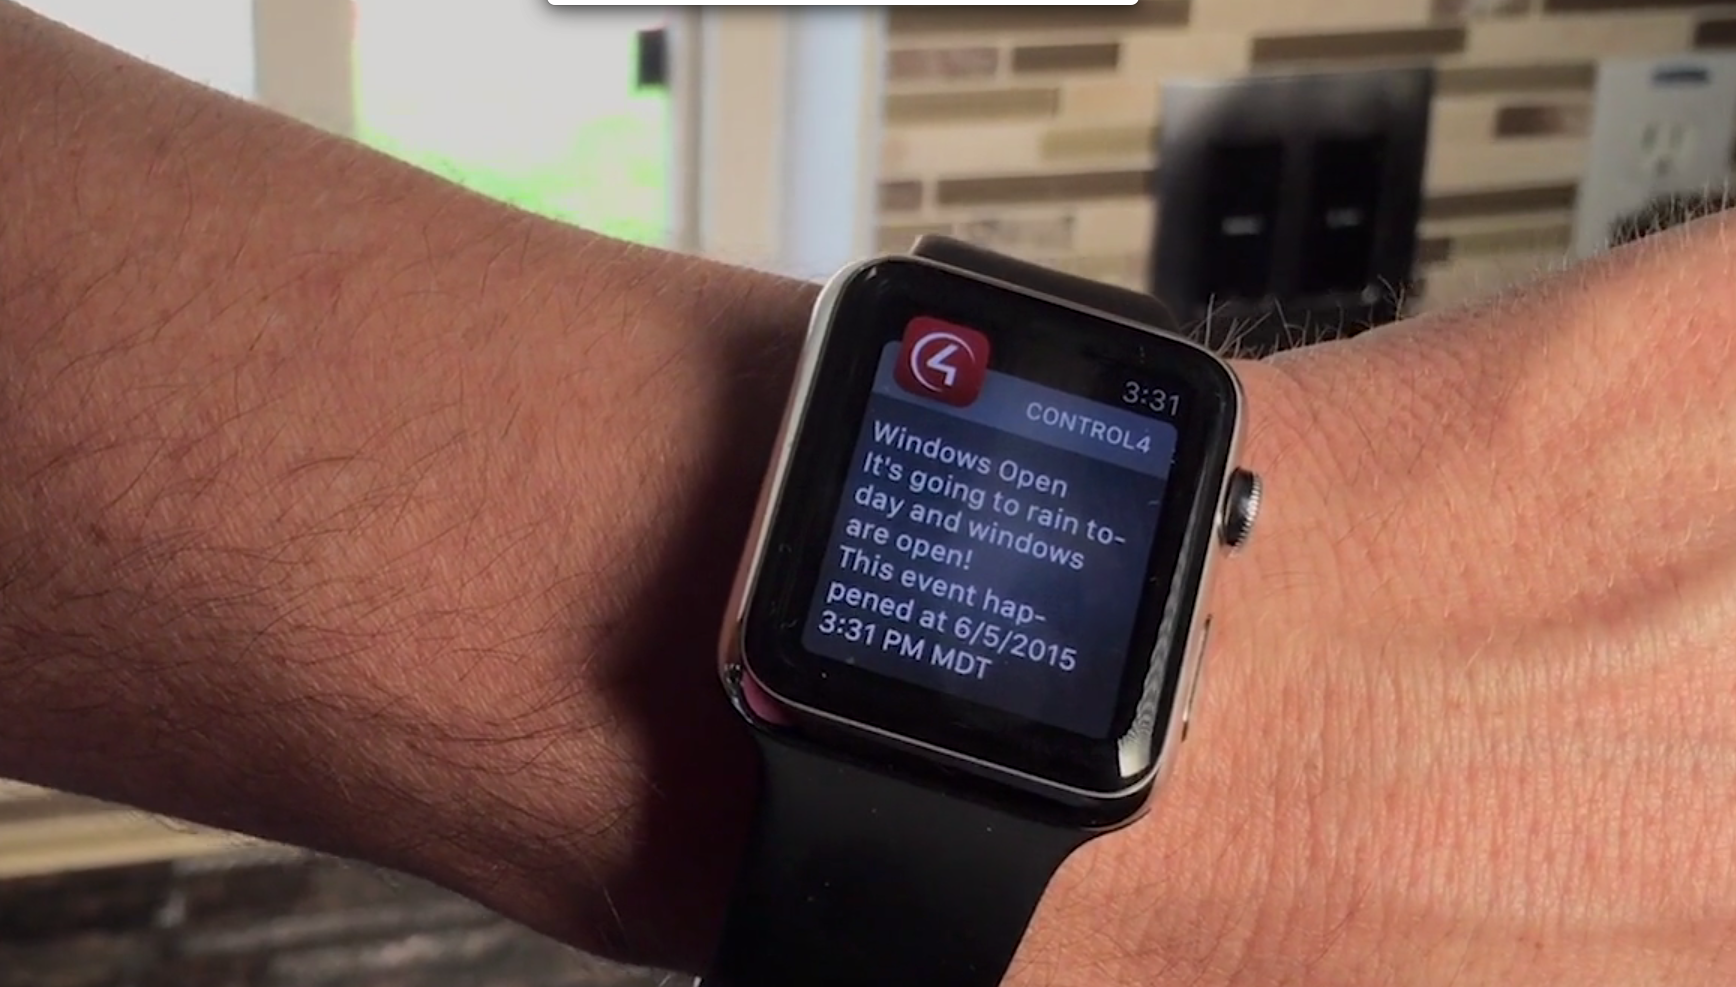 Alerts from your Smart Home on your watch and mobile! [VIDEO]: alerts, push notifications, safety, security, smart home,